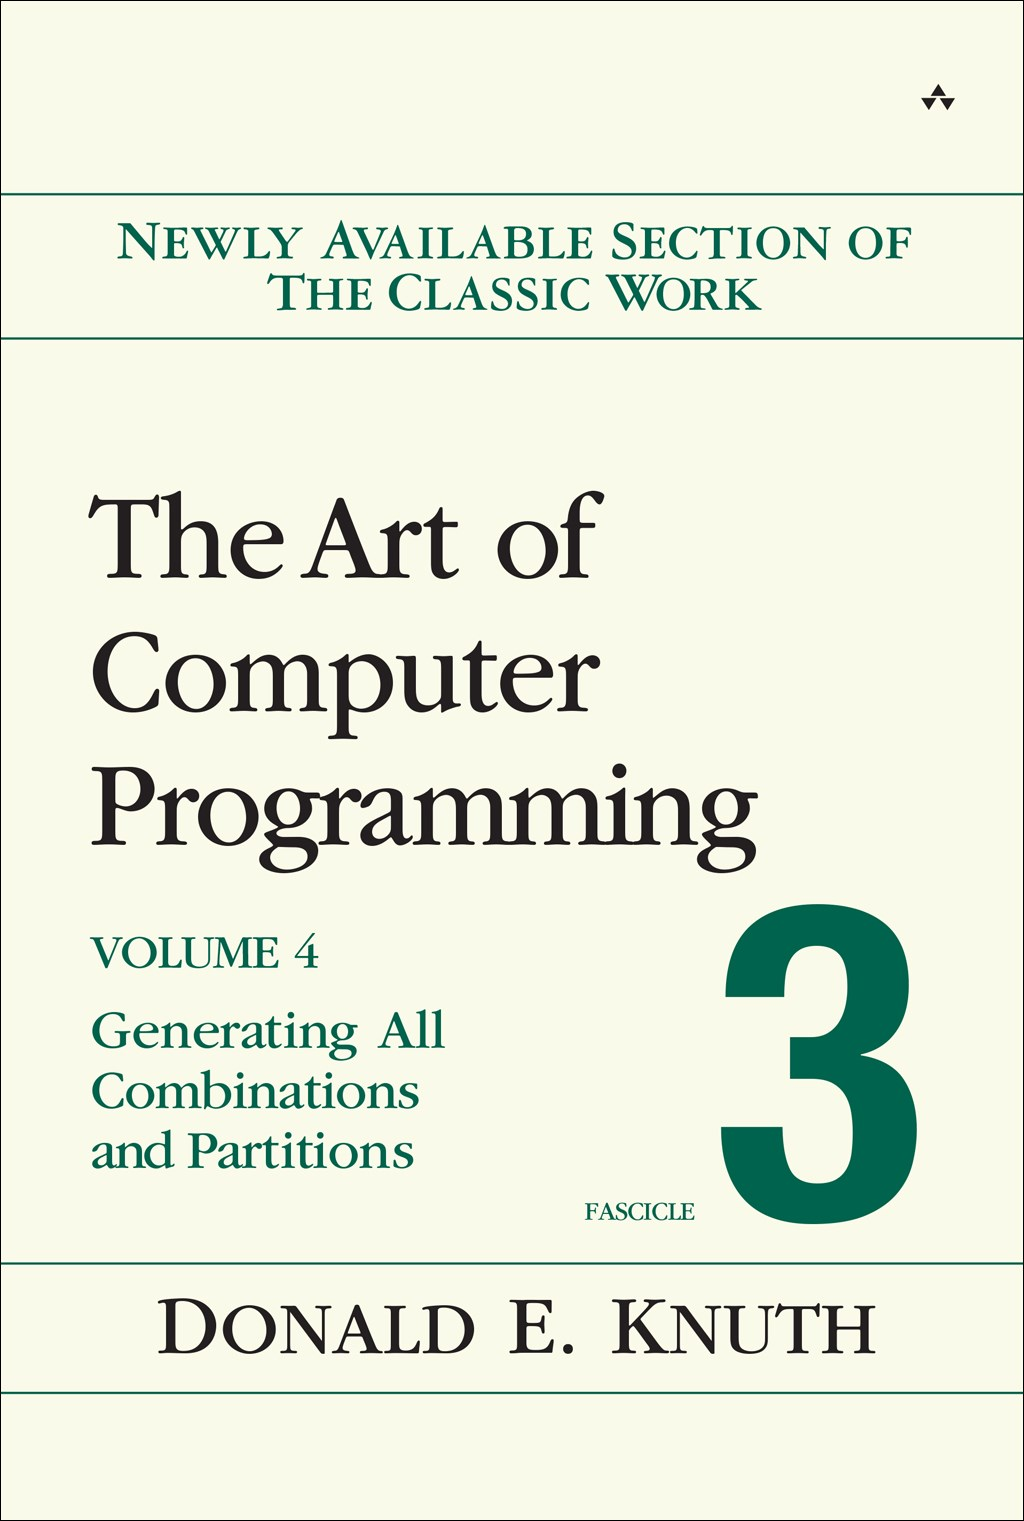 Art of Computer Programming, Volume 4,  Fascicle 3, The: Generating All Combinations and Partitions